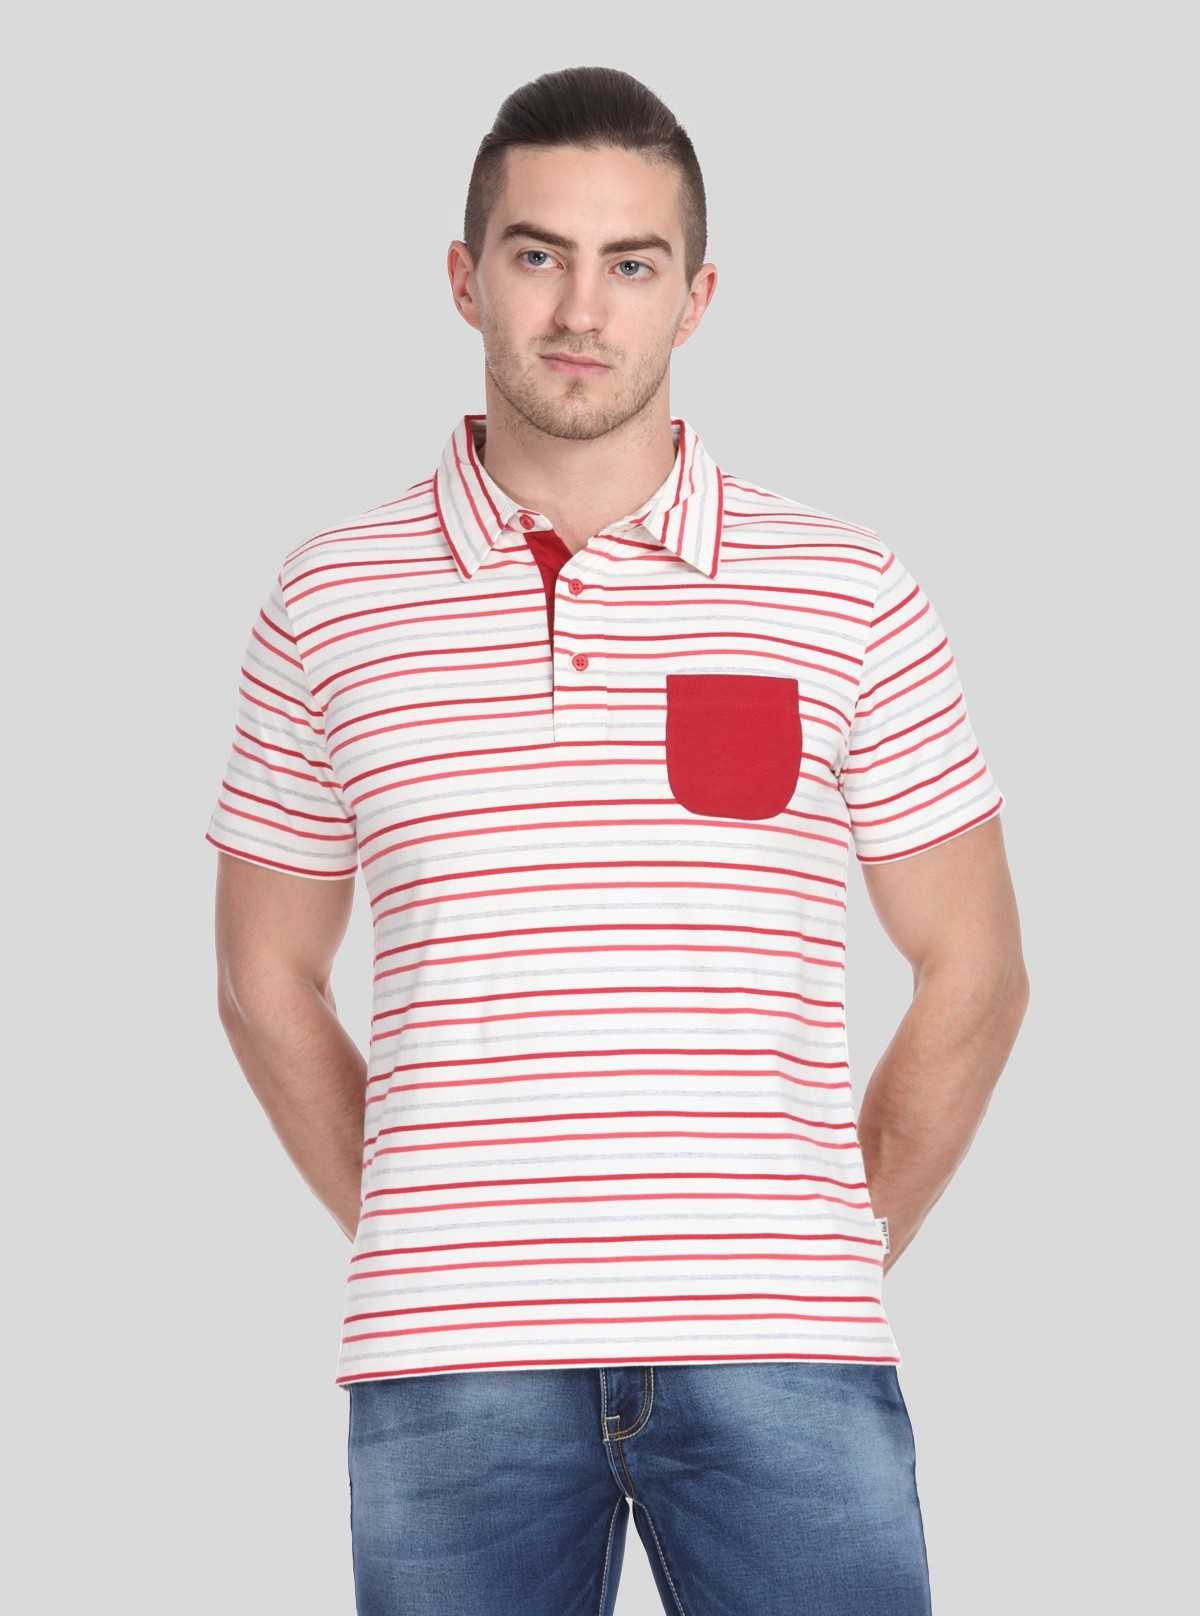 Red Stripe Self Collar Polo TShirt